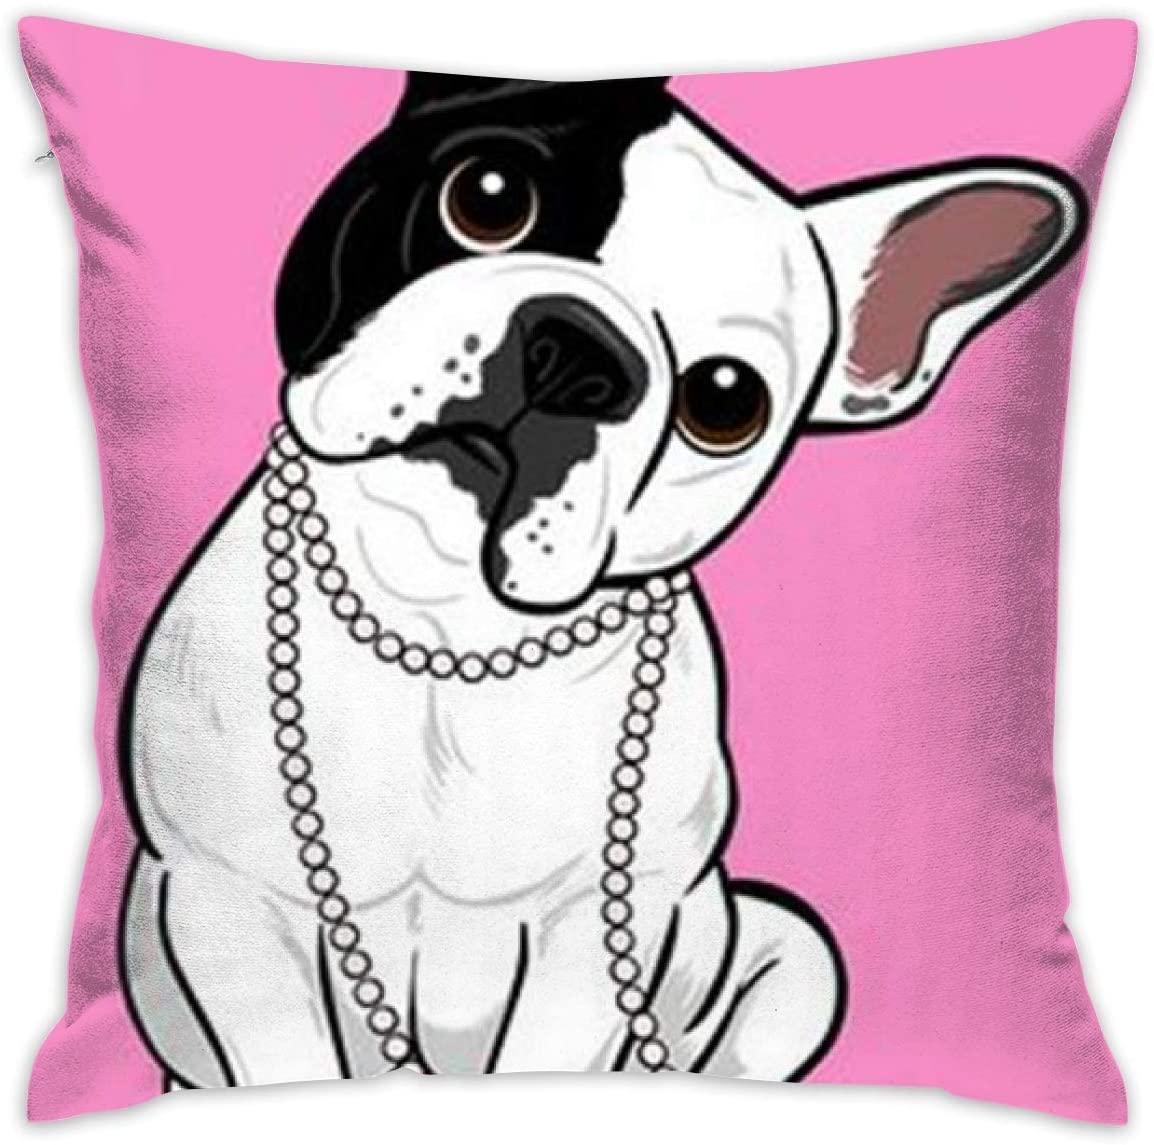 Eu French Bulldog Pillow Cover Decorative Home Decor Nice Gift Square Indoor Pillowcase 18 X 18 Inch 45 X 45 Cm Side Sleeper Pillows Unique Pillows From Homeues12 13 07 Dhgate Com